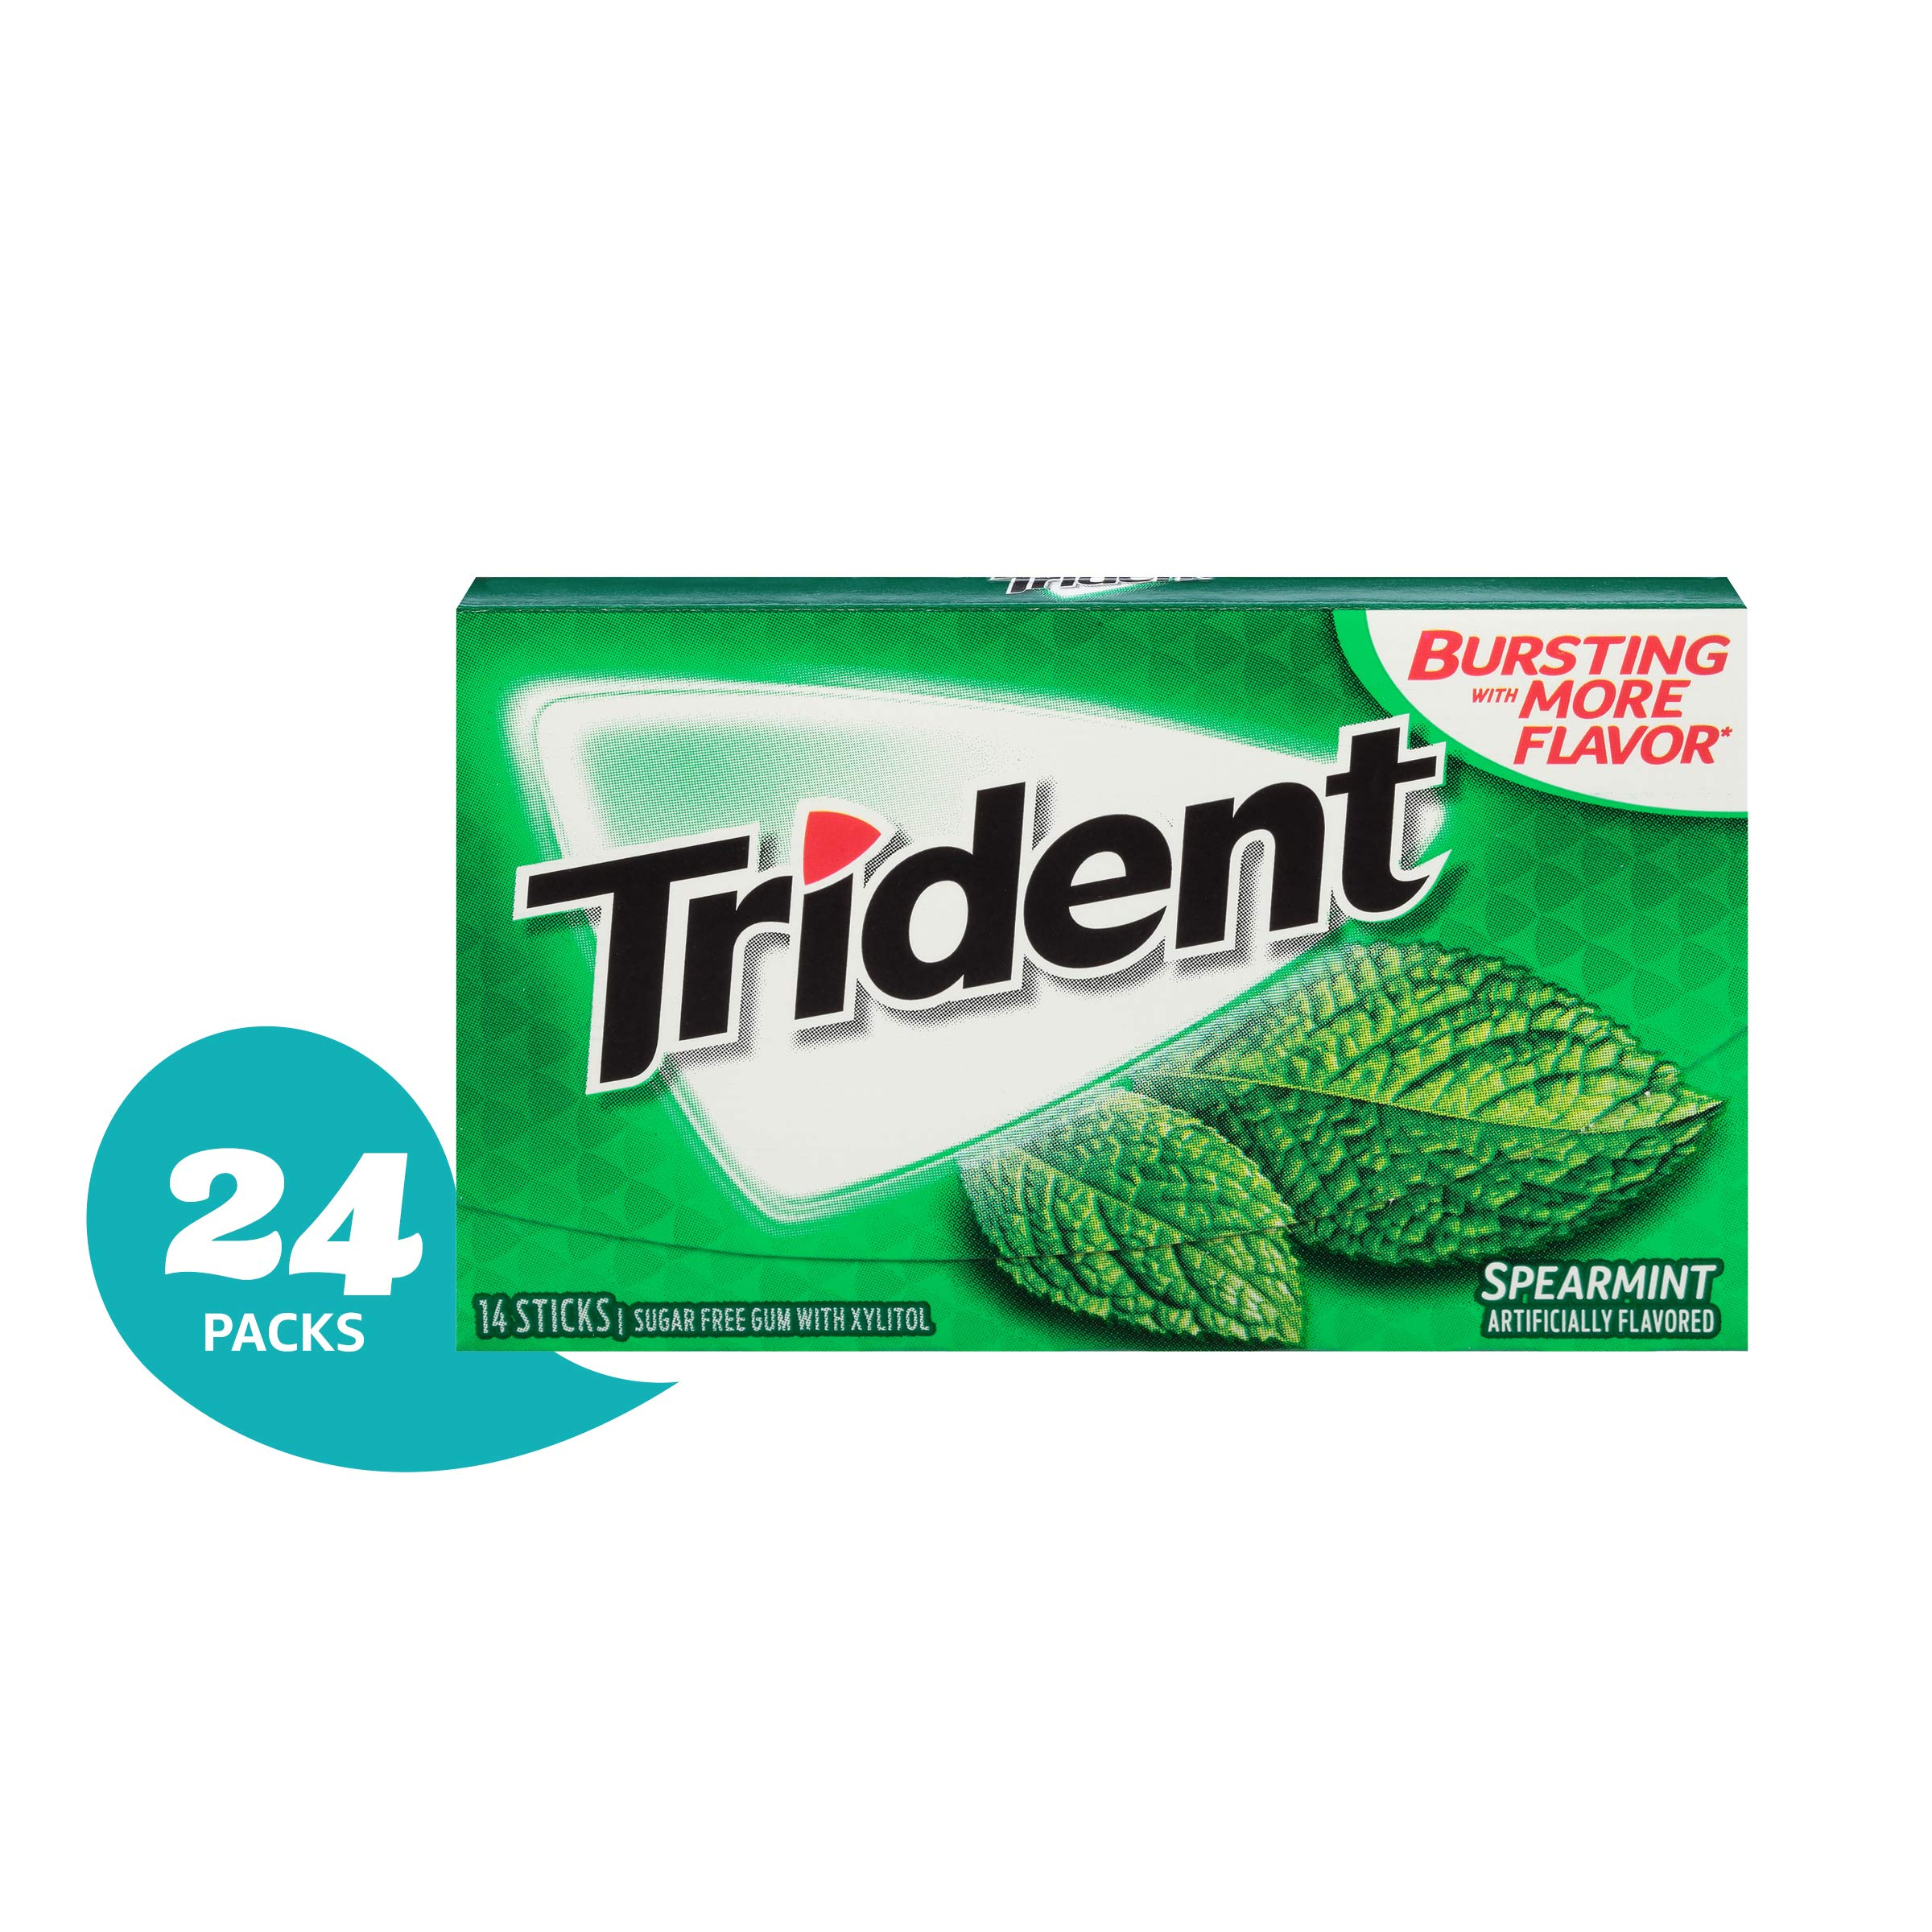 Trident Spearmint Sugar Free Gum - 24 Pack (336Piece Total) by Trident